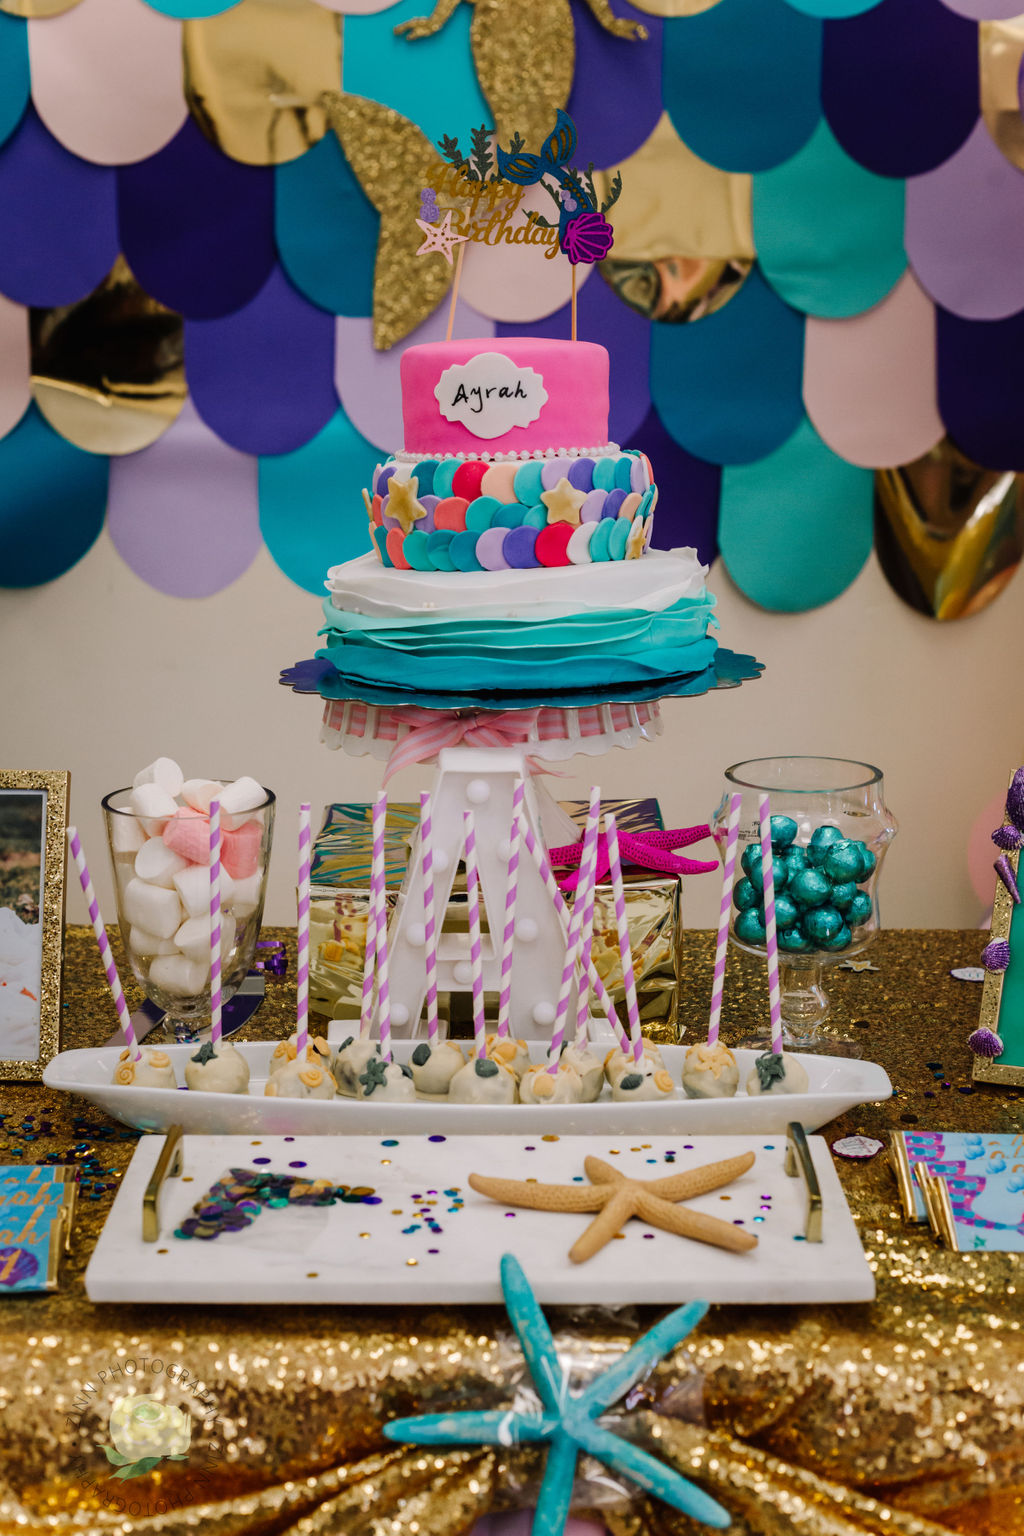 Sugar-Land-Mermaid-Birthday-Party (58).jpg